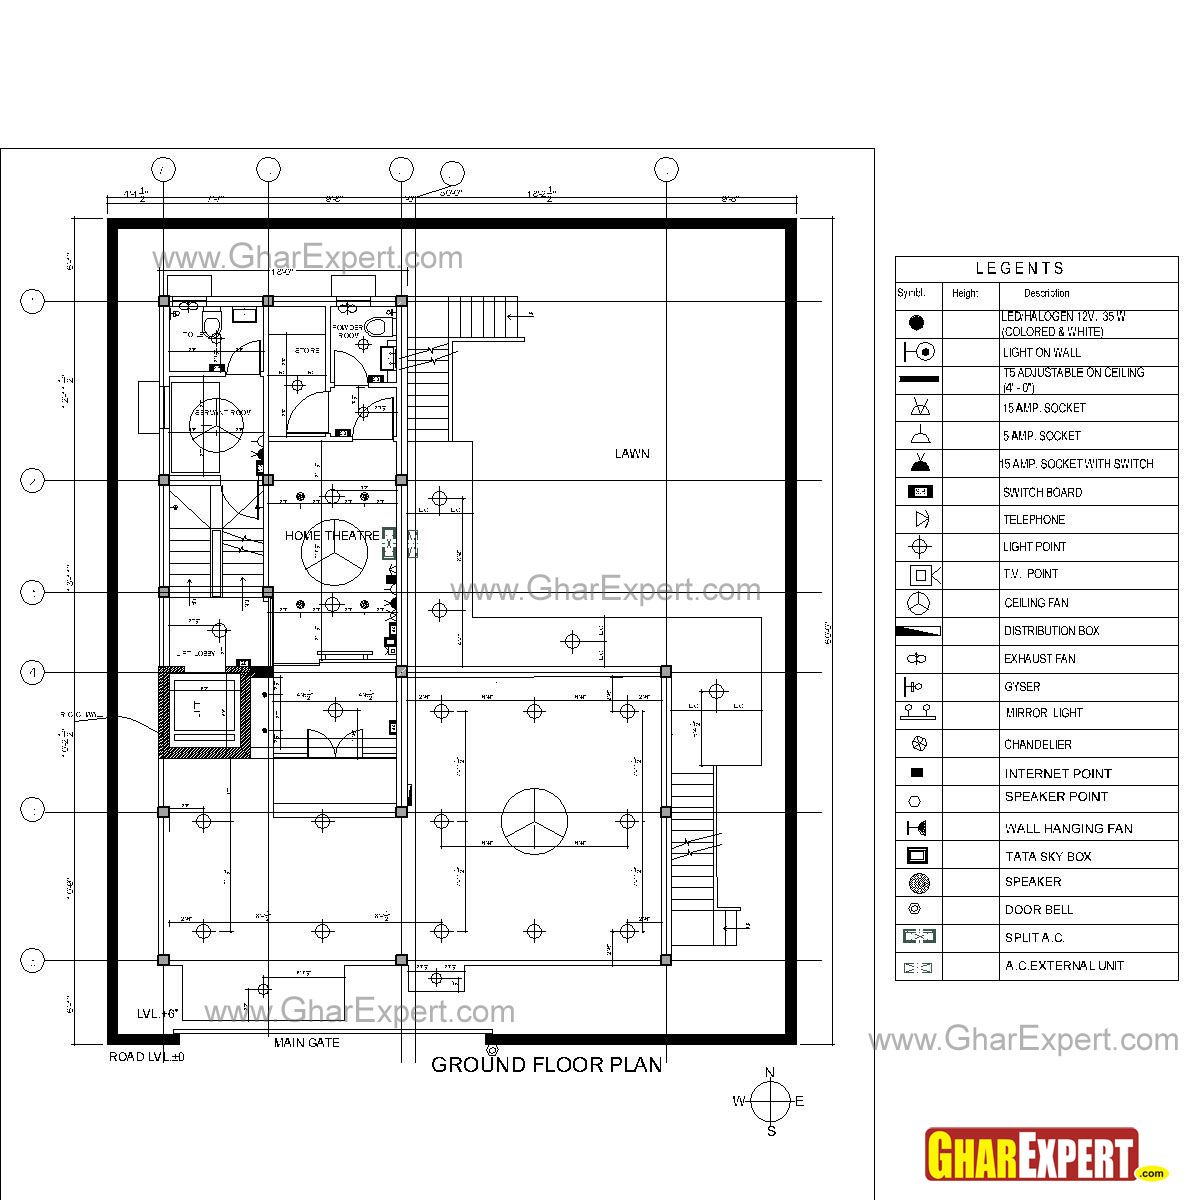 Sample Architectural Structure Plumbing And Electrical Drawings Plumbing Drawing Electrical Layout How To Plan